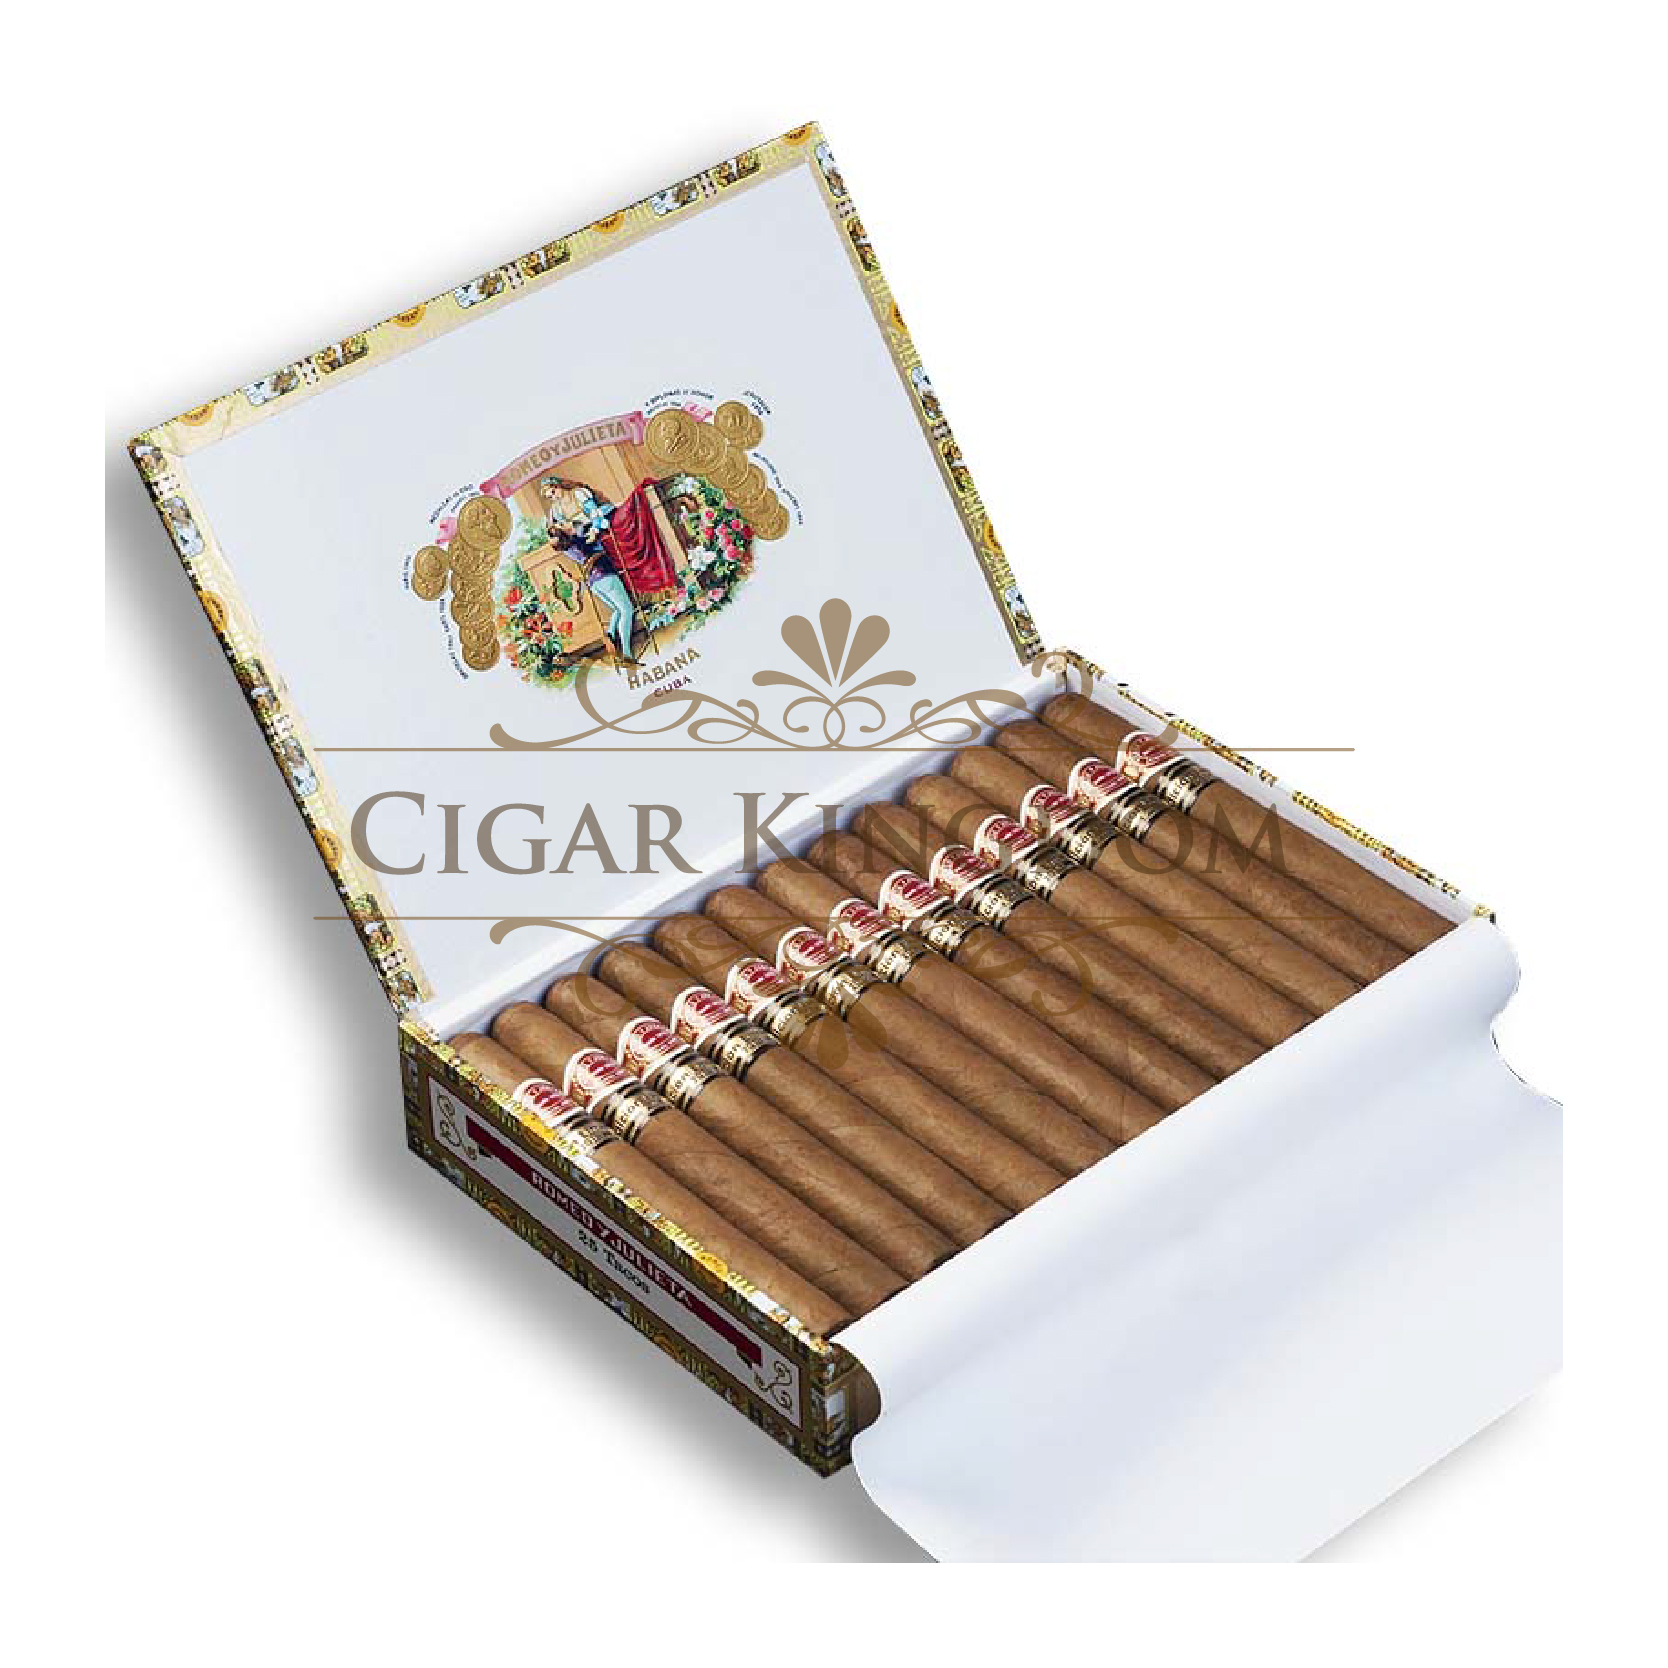 Romeo y Julieta - Tacos Limited Edition 2018 (Pack of 25s)